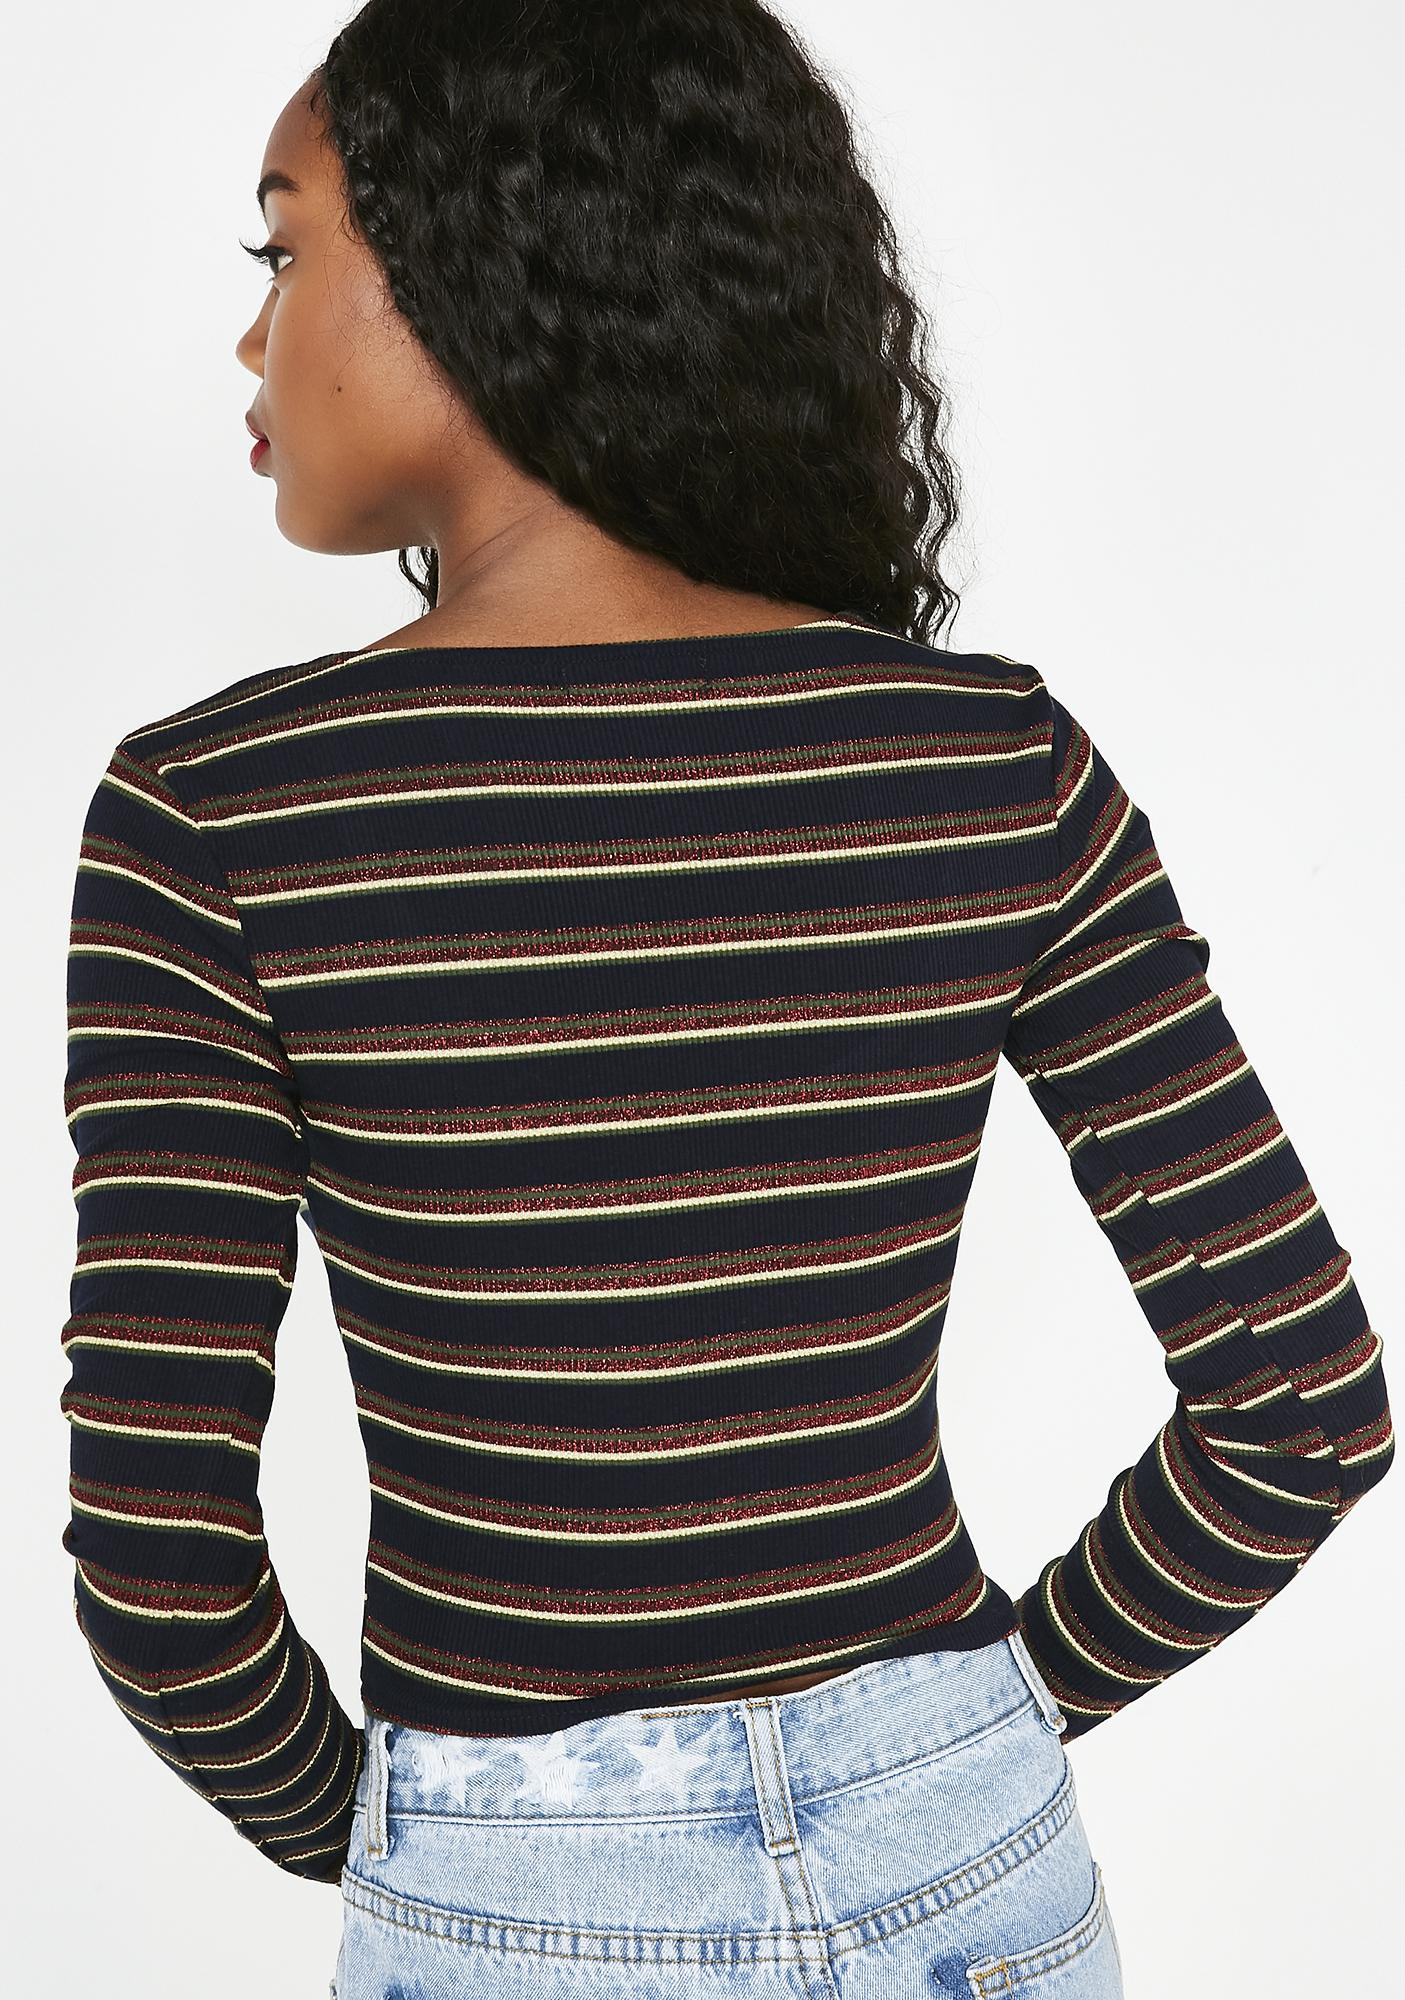 A Whole Hottie Striped Top